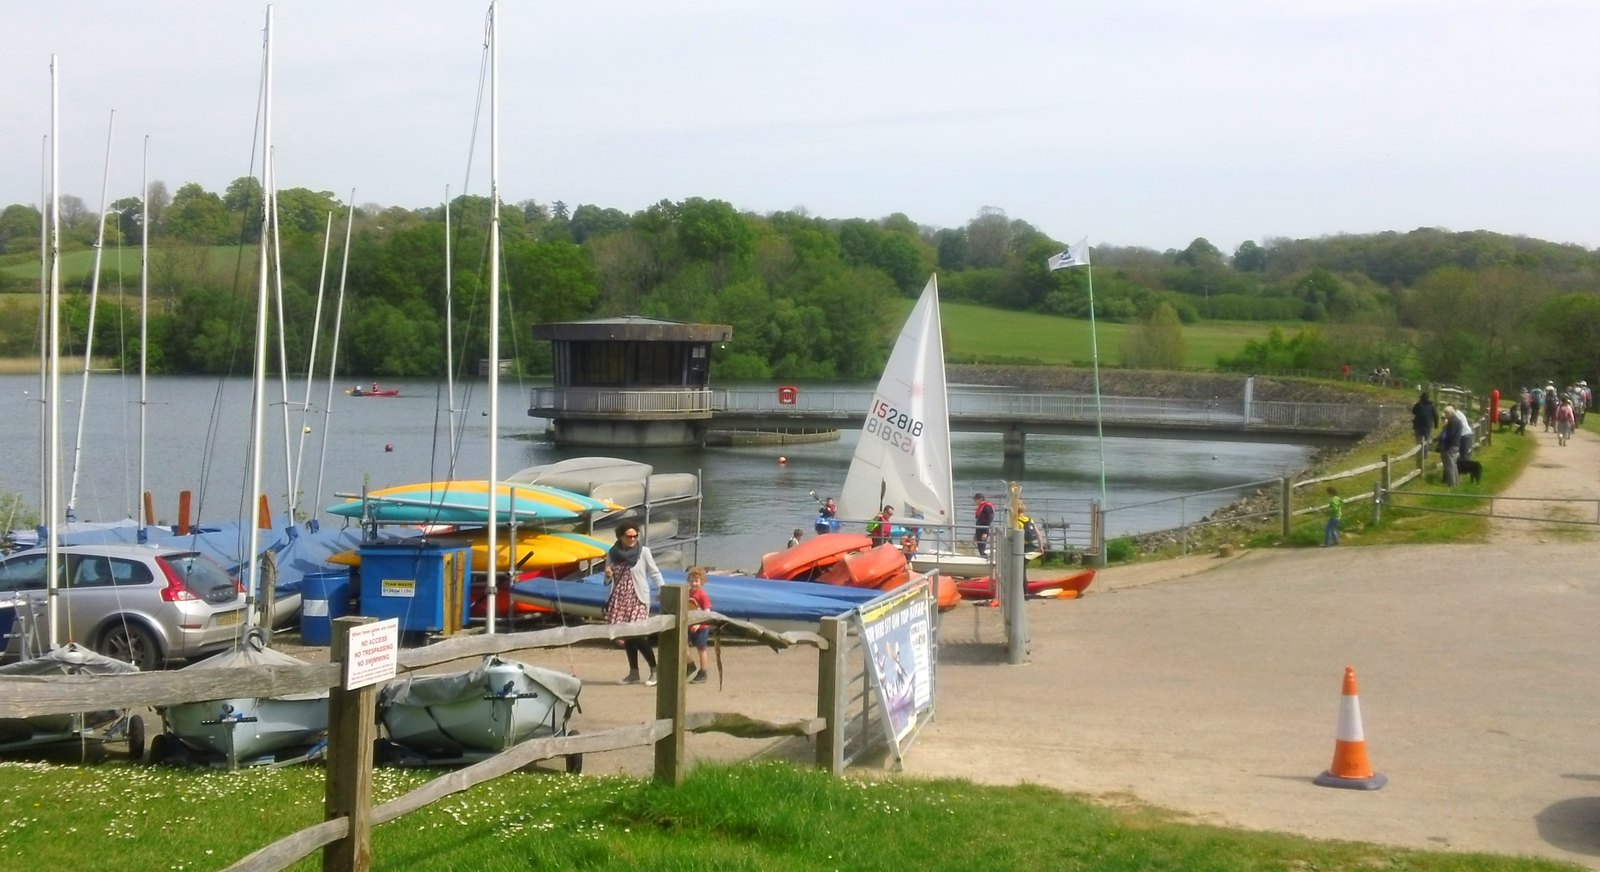 Reservoir dogs, walkers, sailing and other activities Ardingly, Sussex